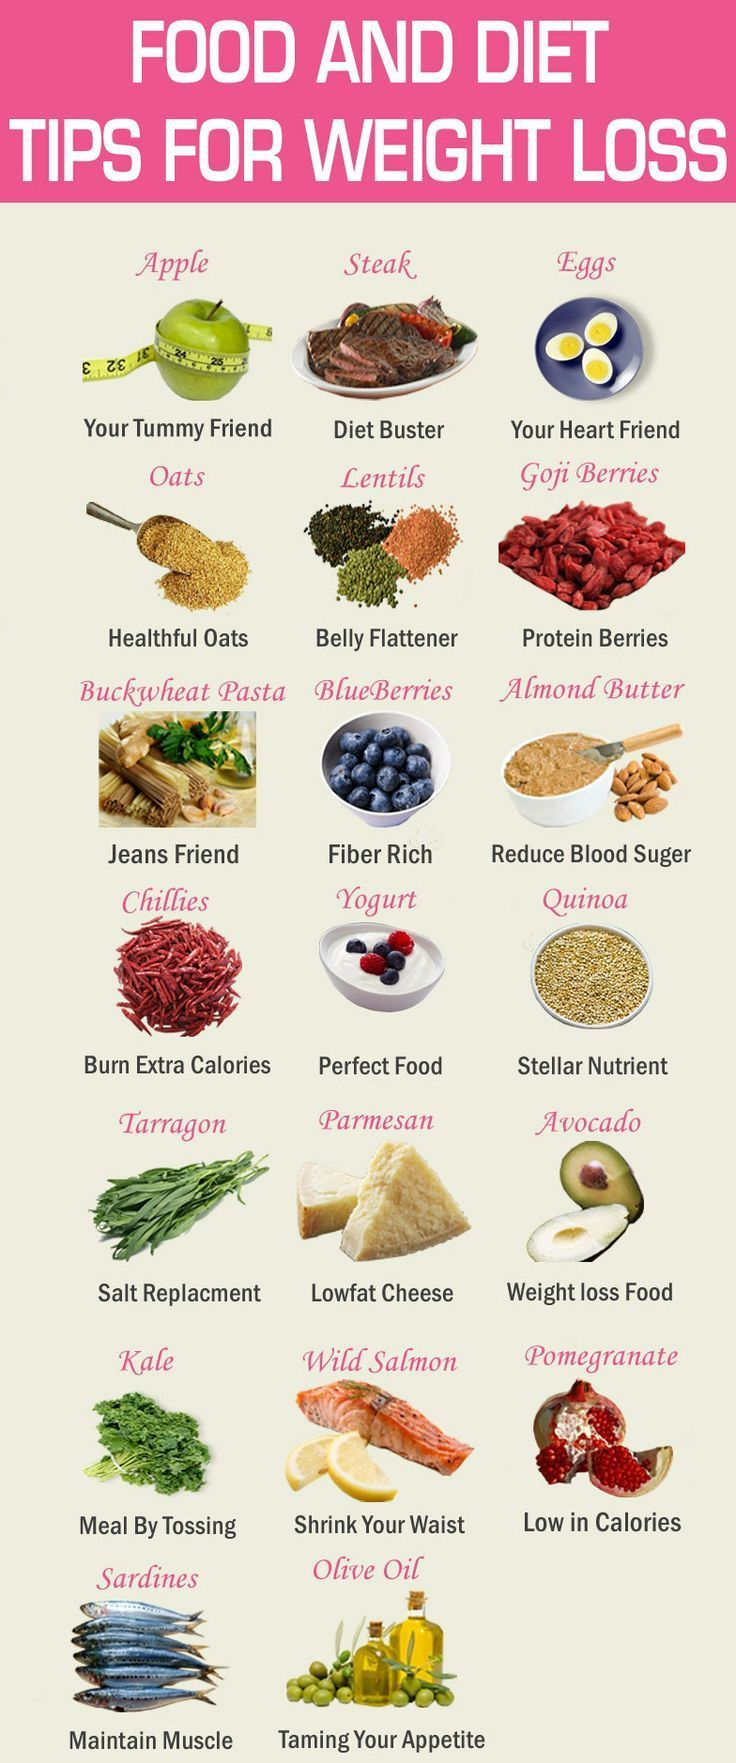 Healthy Weight Loss Tips Food and diet tips! For more weight loss tips just click on the image!